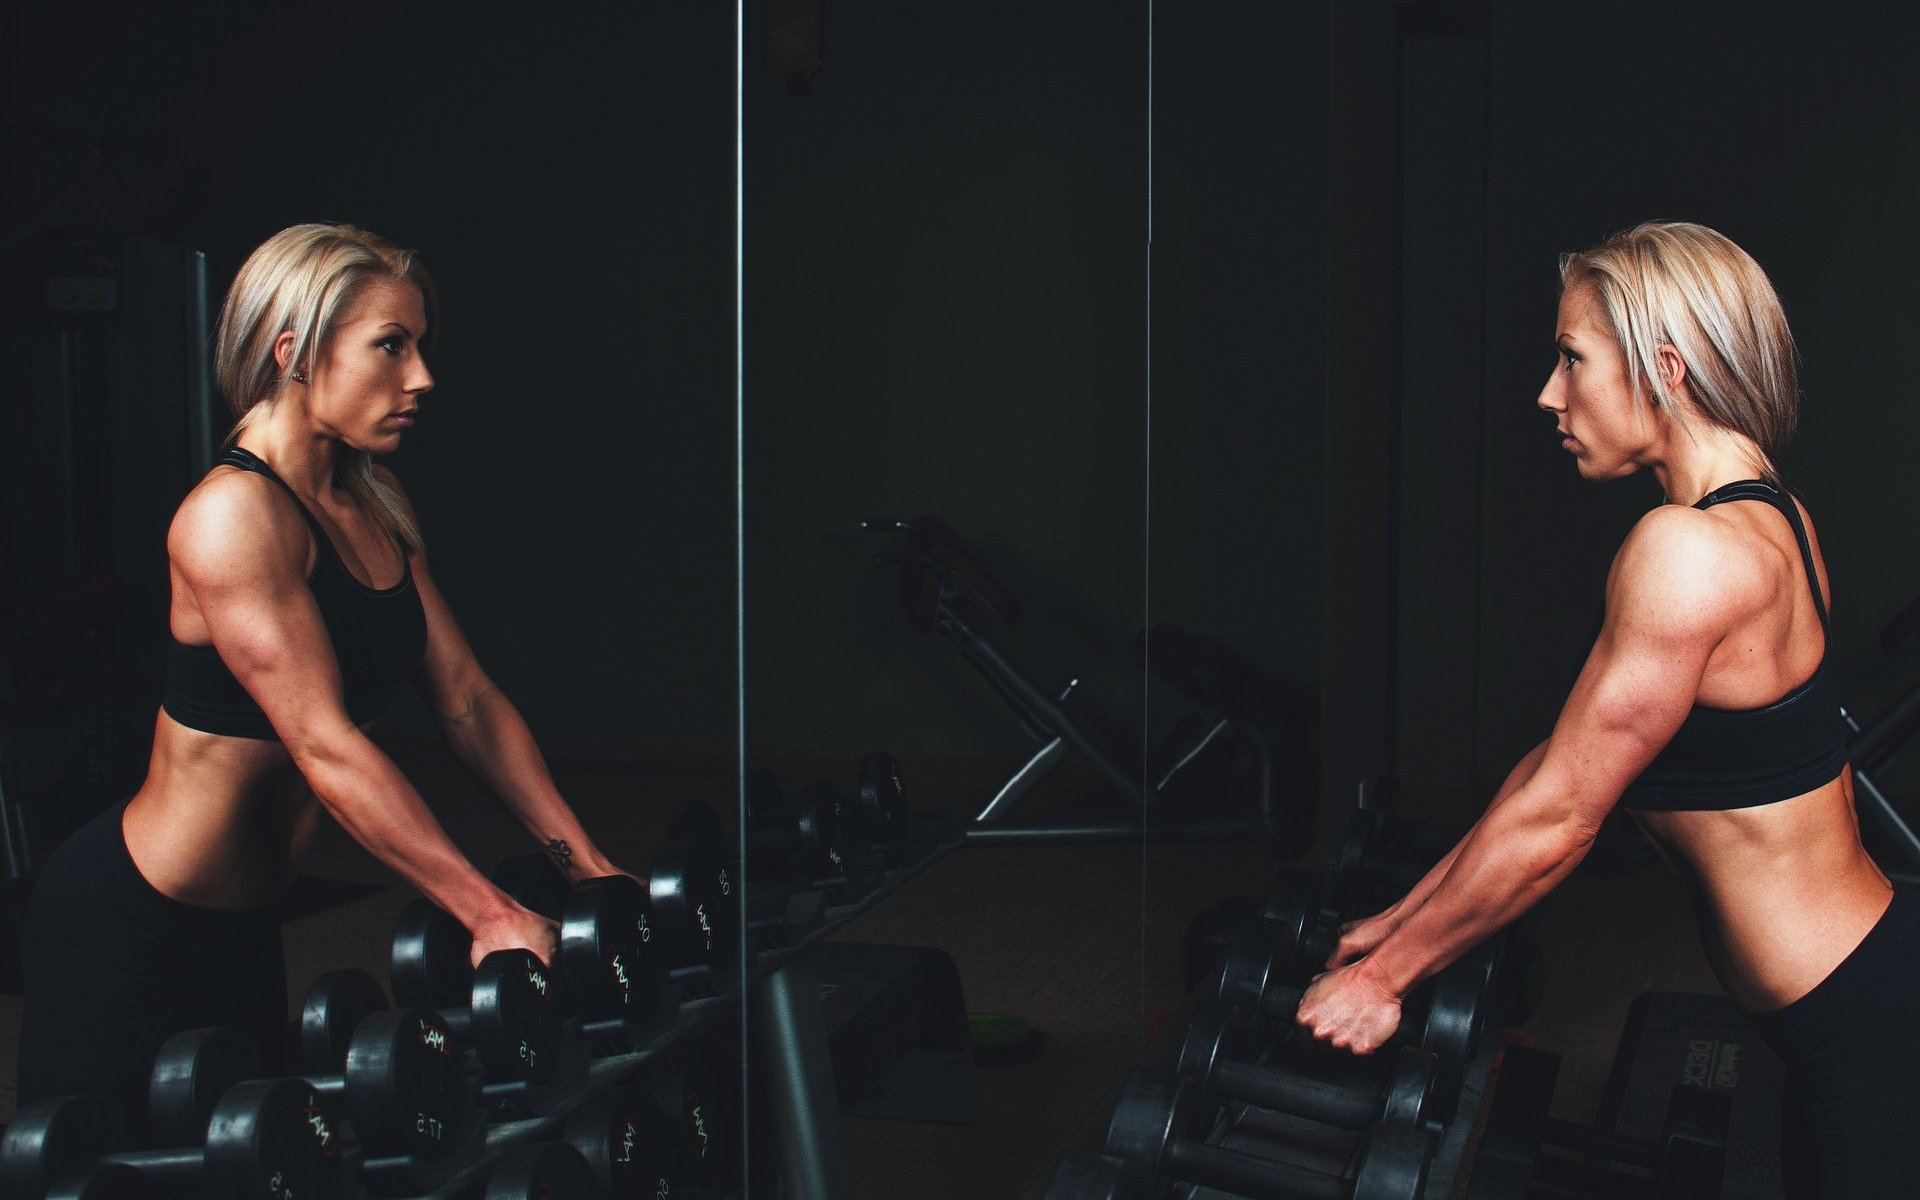 Blonde athletic girl holding weights in gym in front of mirror